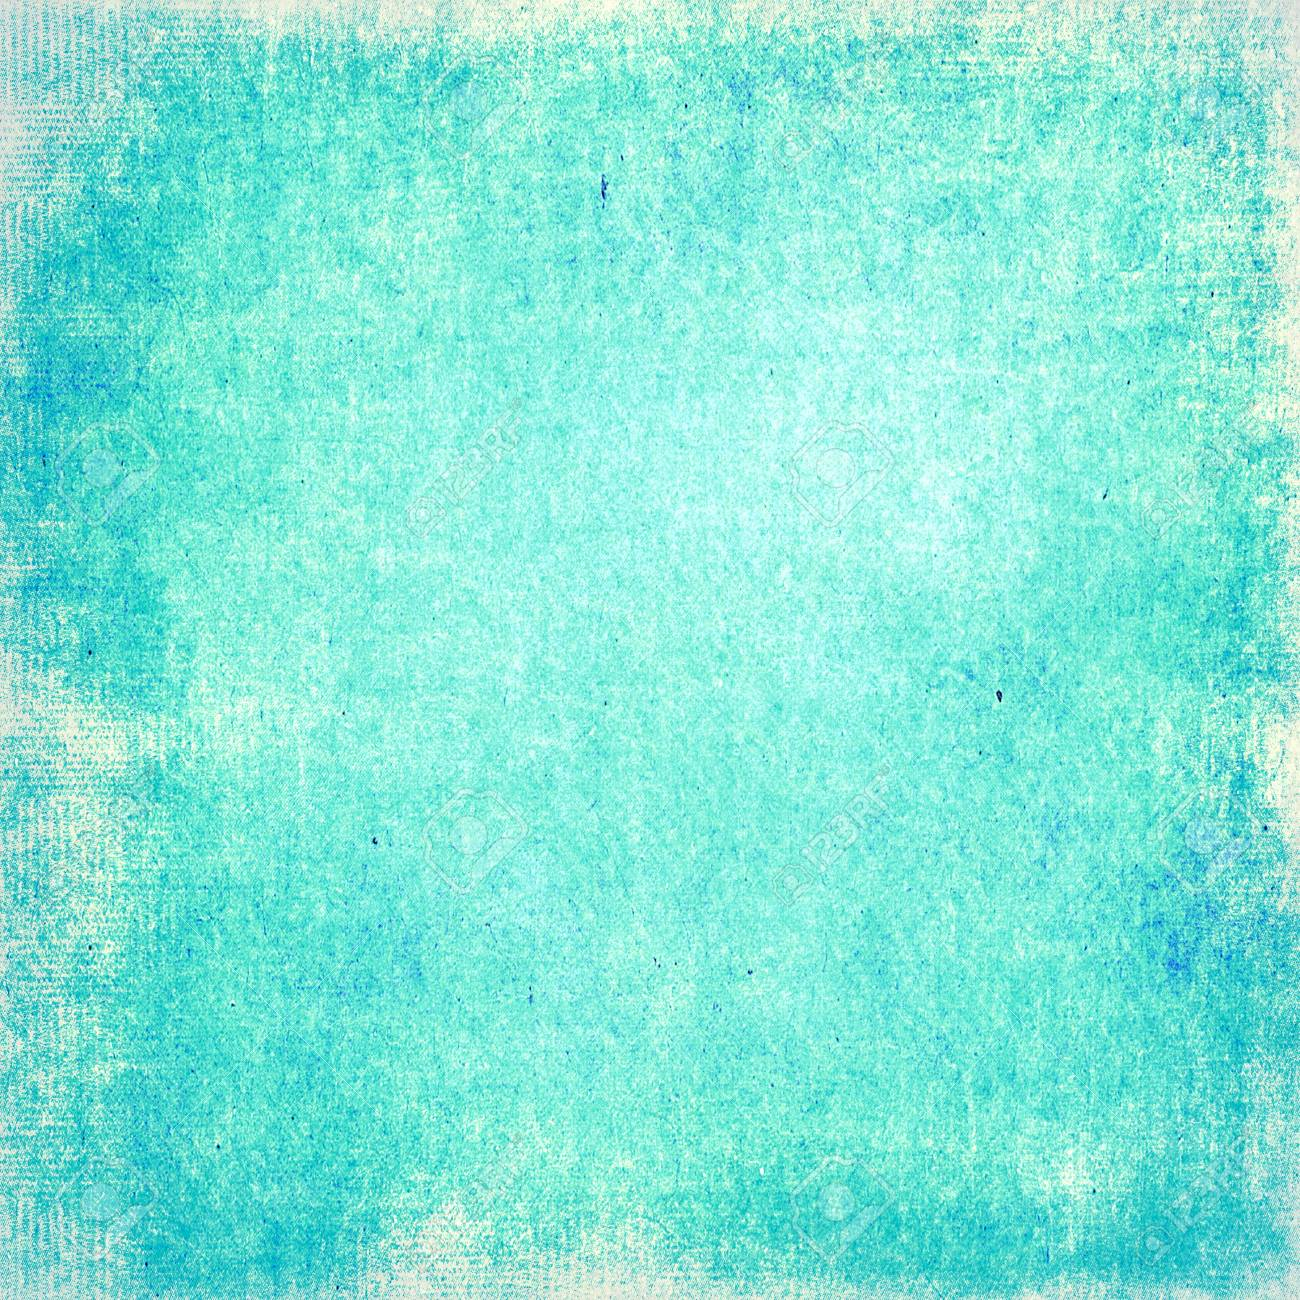 Highly detailed blue grunge background or paper with vintage texture and space for your text, image or border frame Stock Photo - 17389718